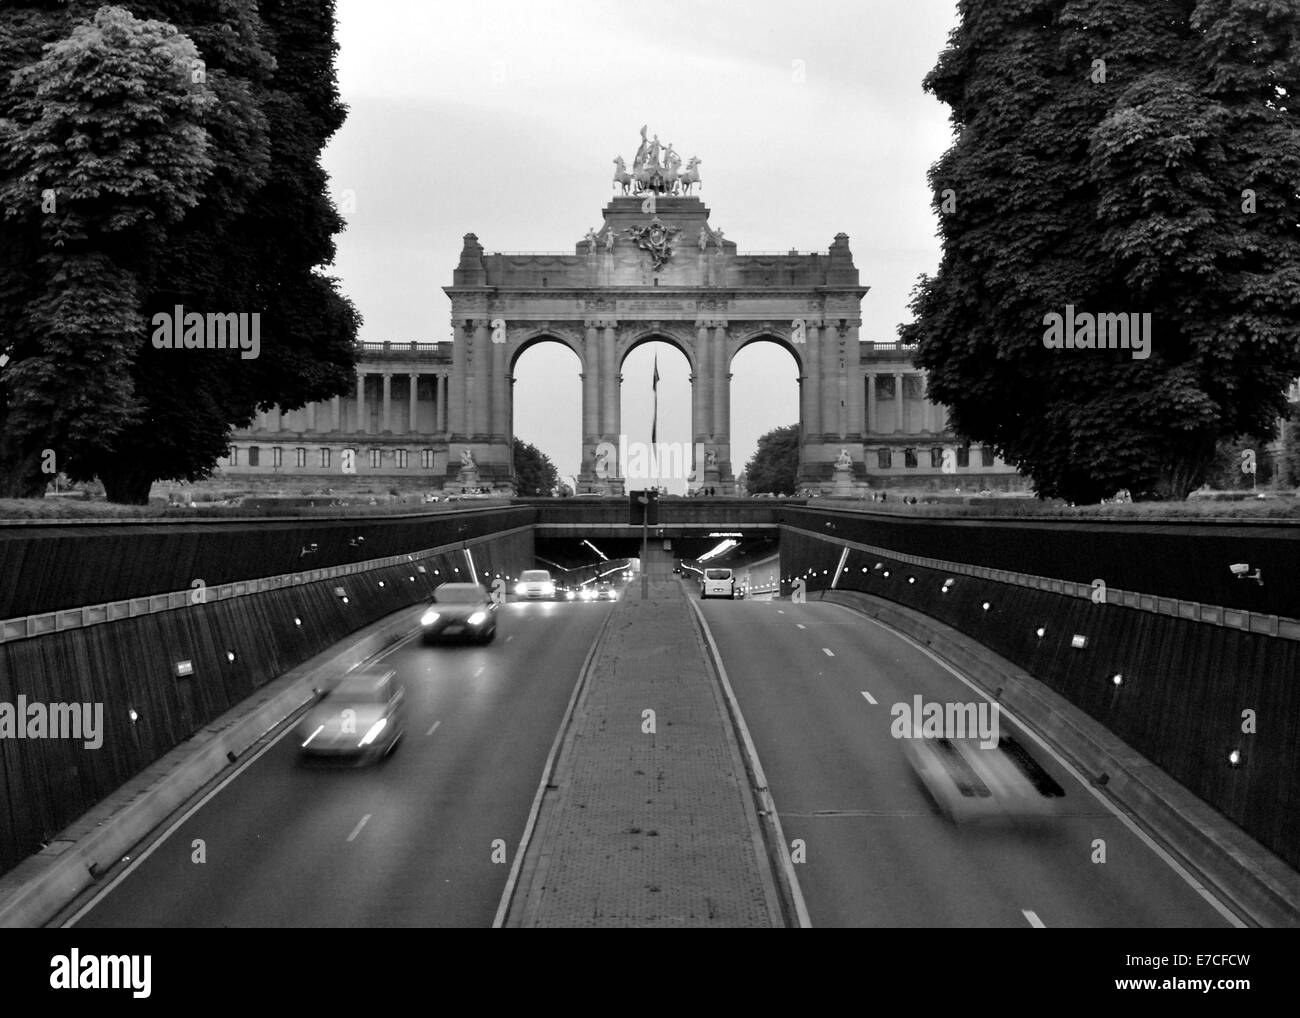 Driving under the Parc du Cinquantenaire in the Belliard Tunnel in Brussels, Belgium - Stock Image